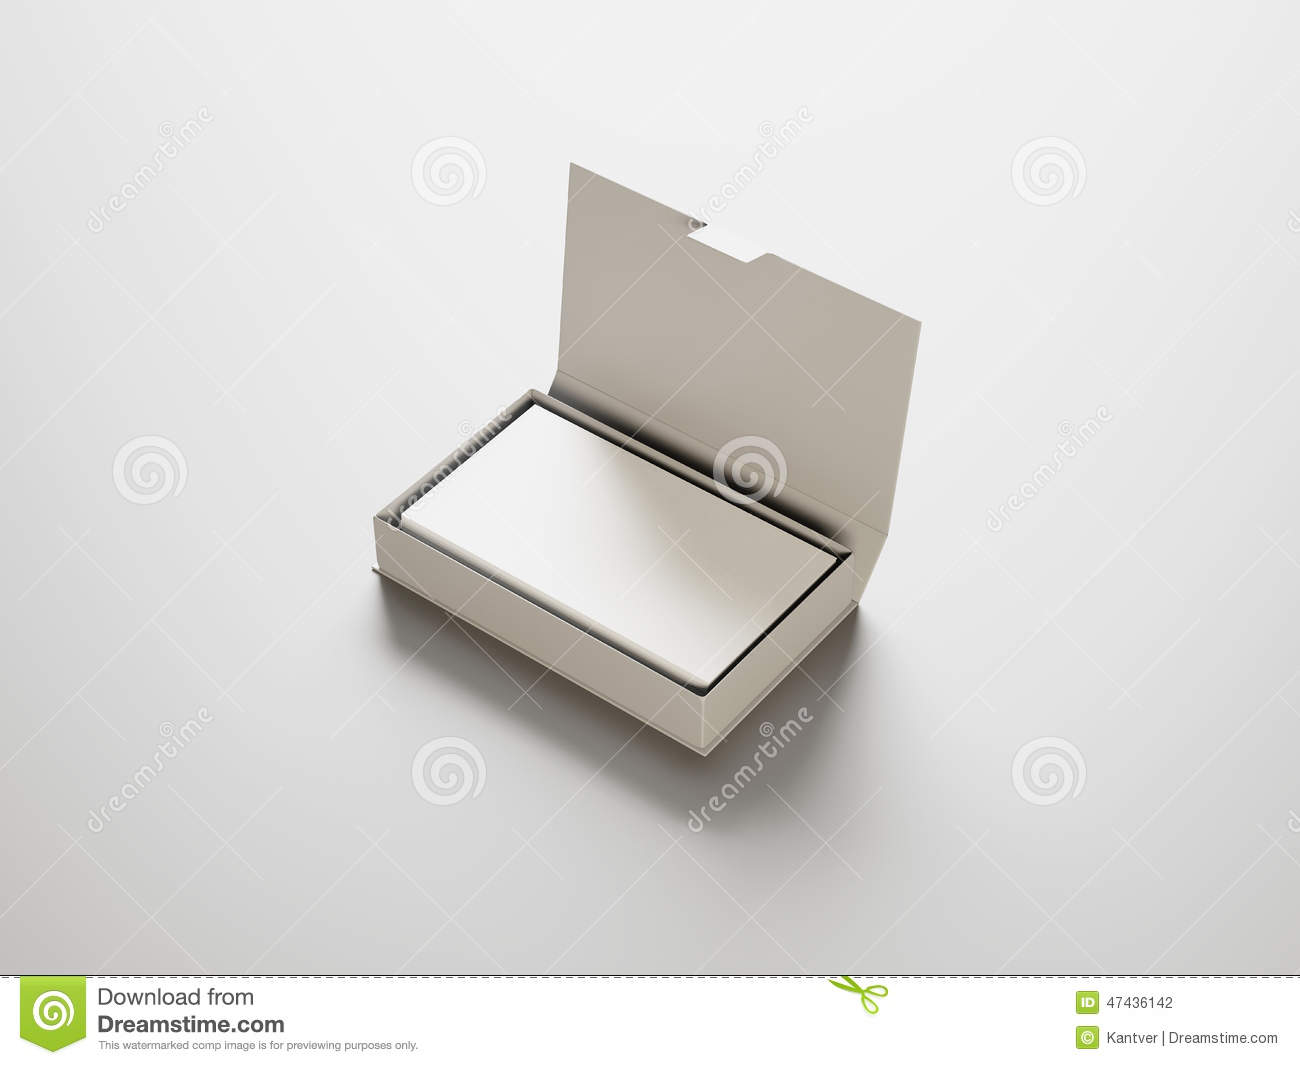 White Business Cards In The White Box Stock Photo - Image of paper ...